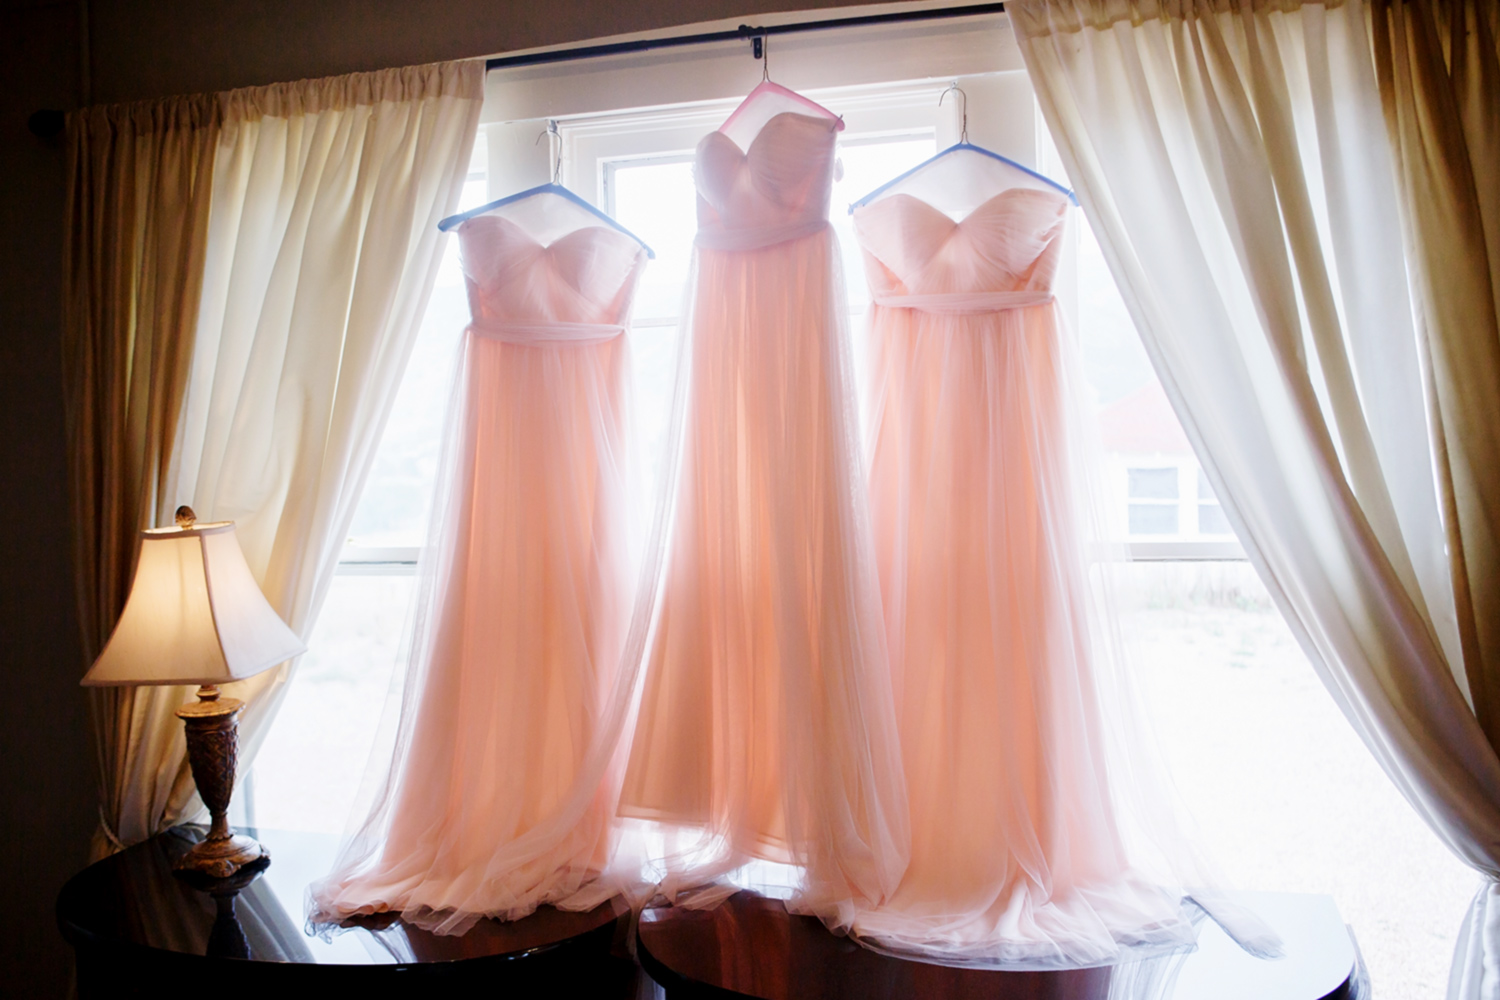 BridesmaidDressesJuliaTimmer.jpg